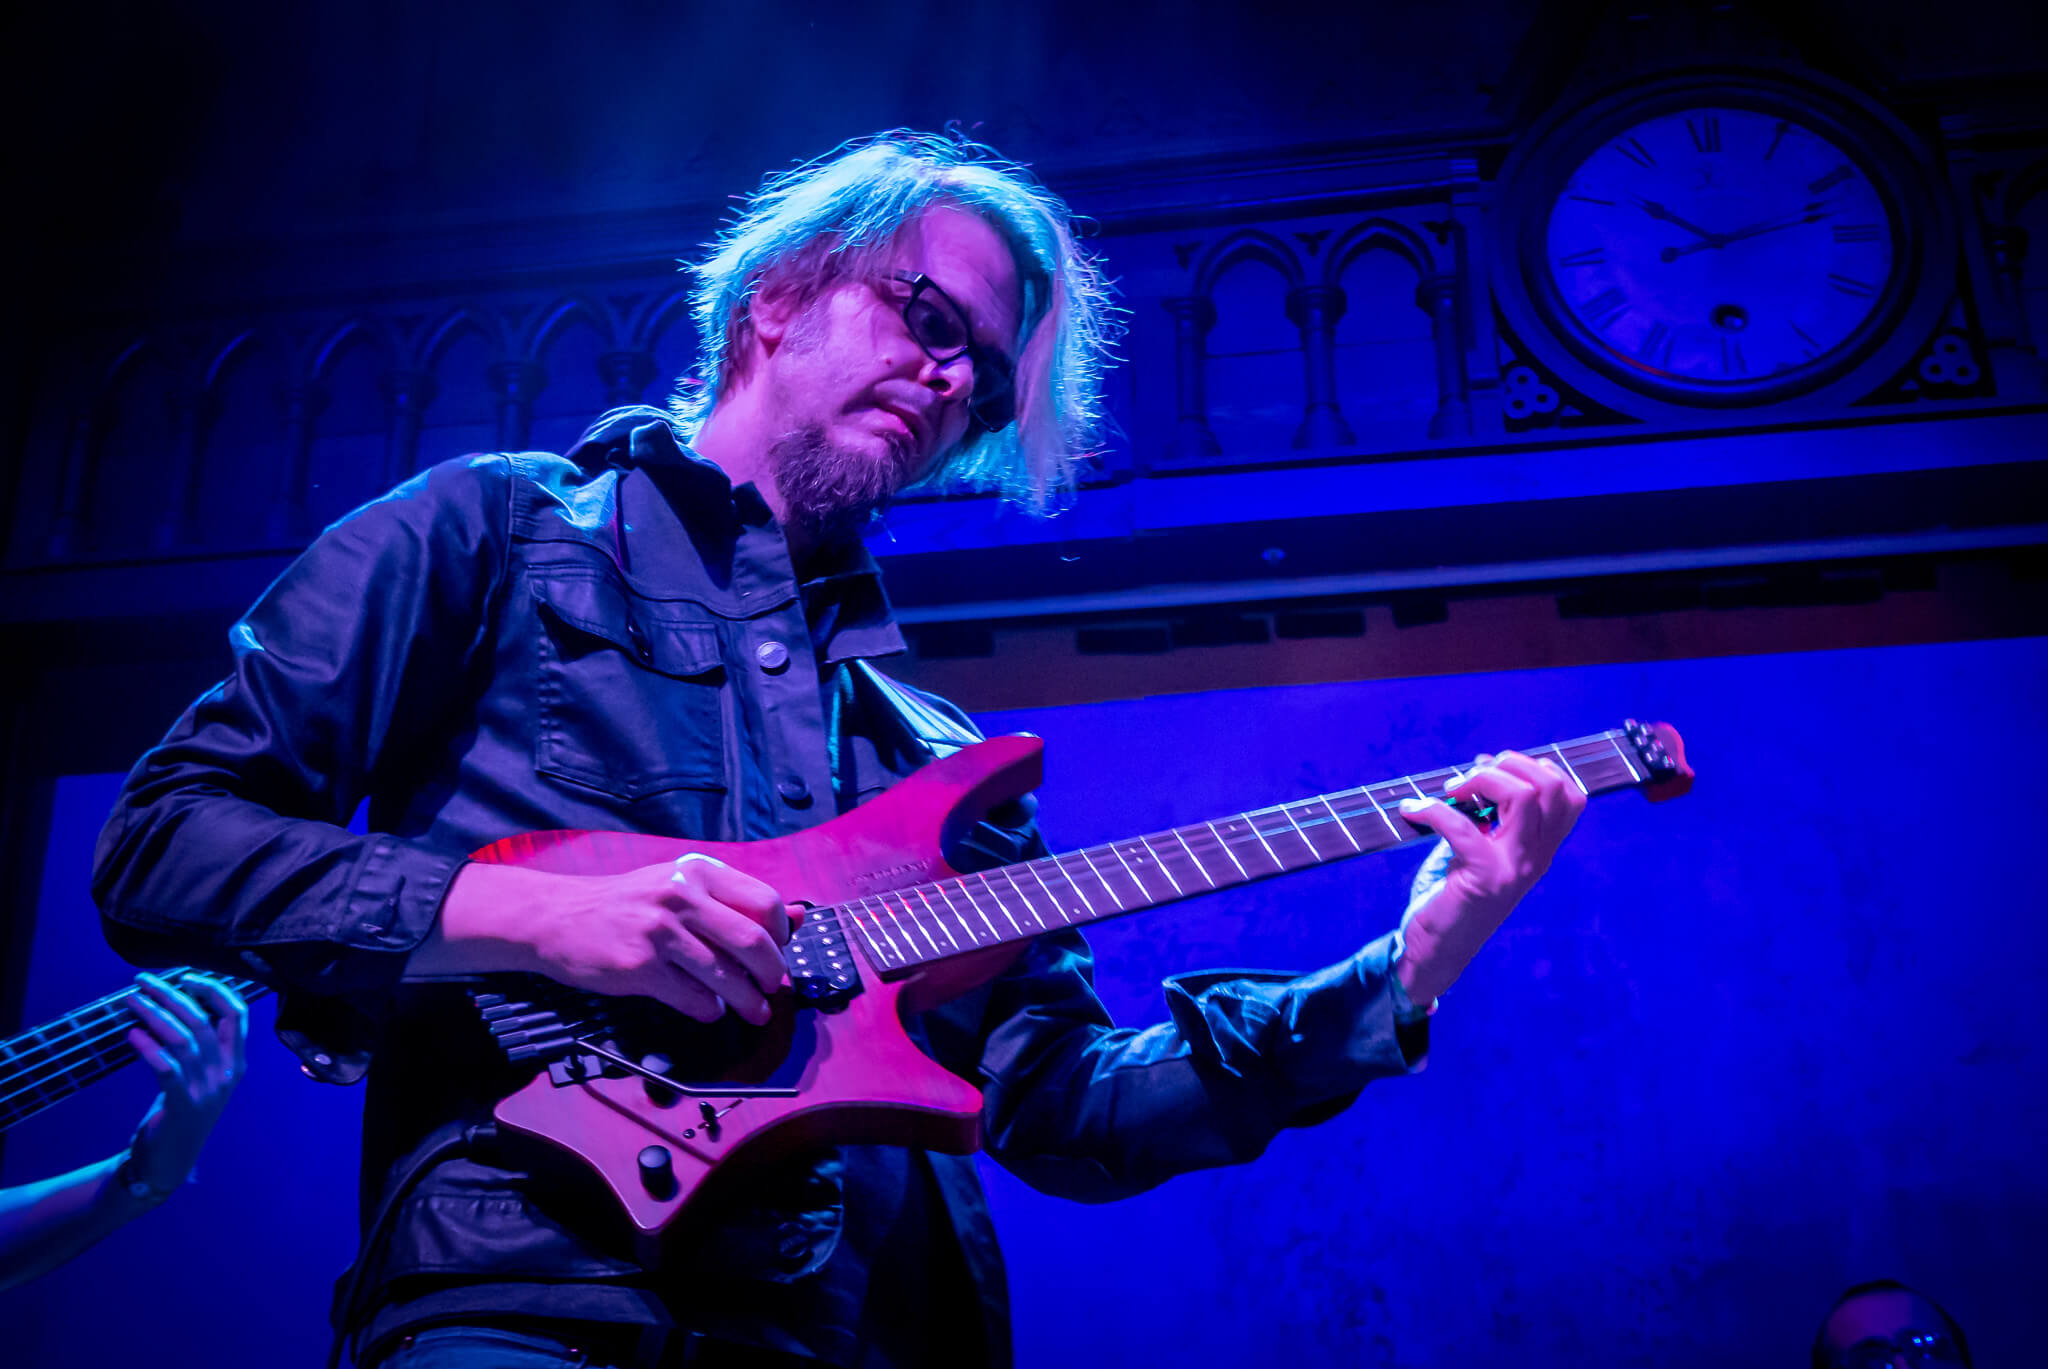 Alex machaeck on stage with his signature headless guitar